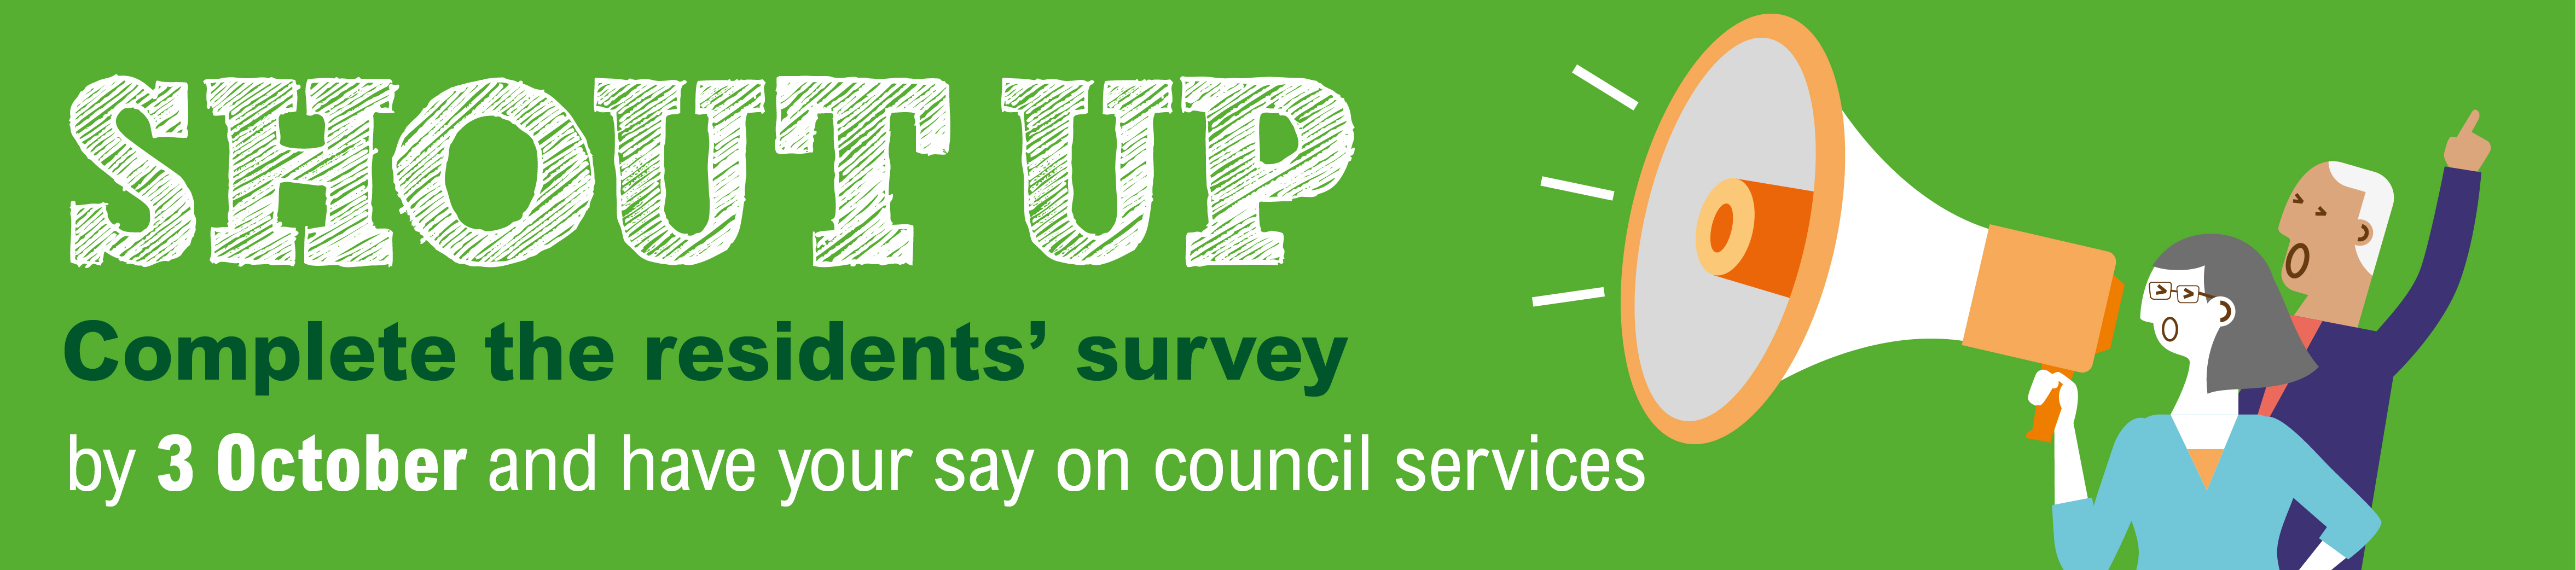 Shout up: Complete the resident's survey by 3 October